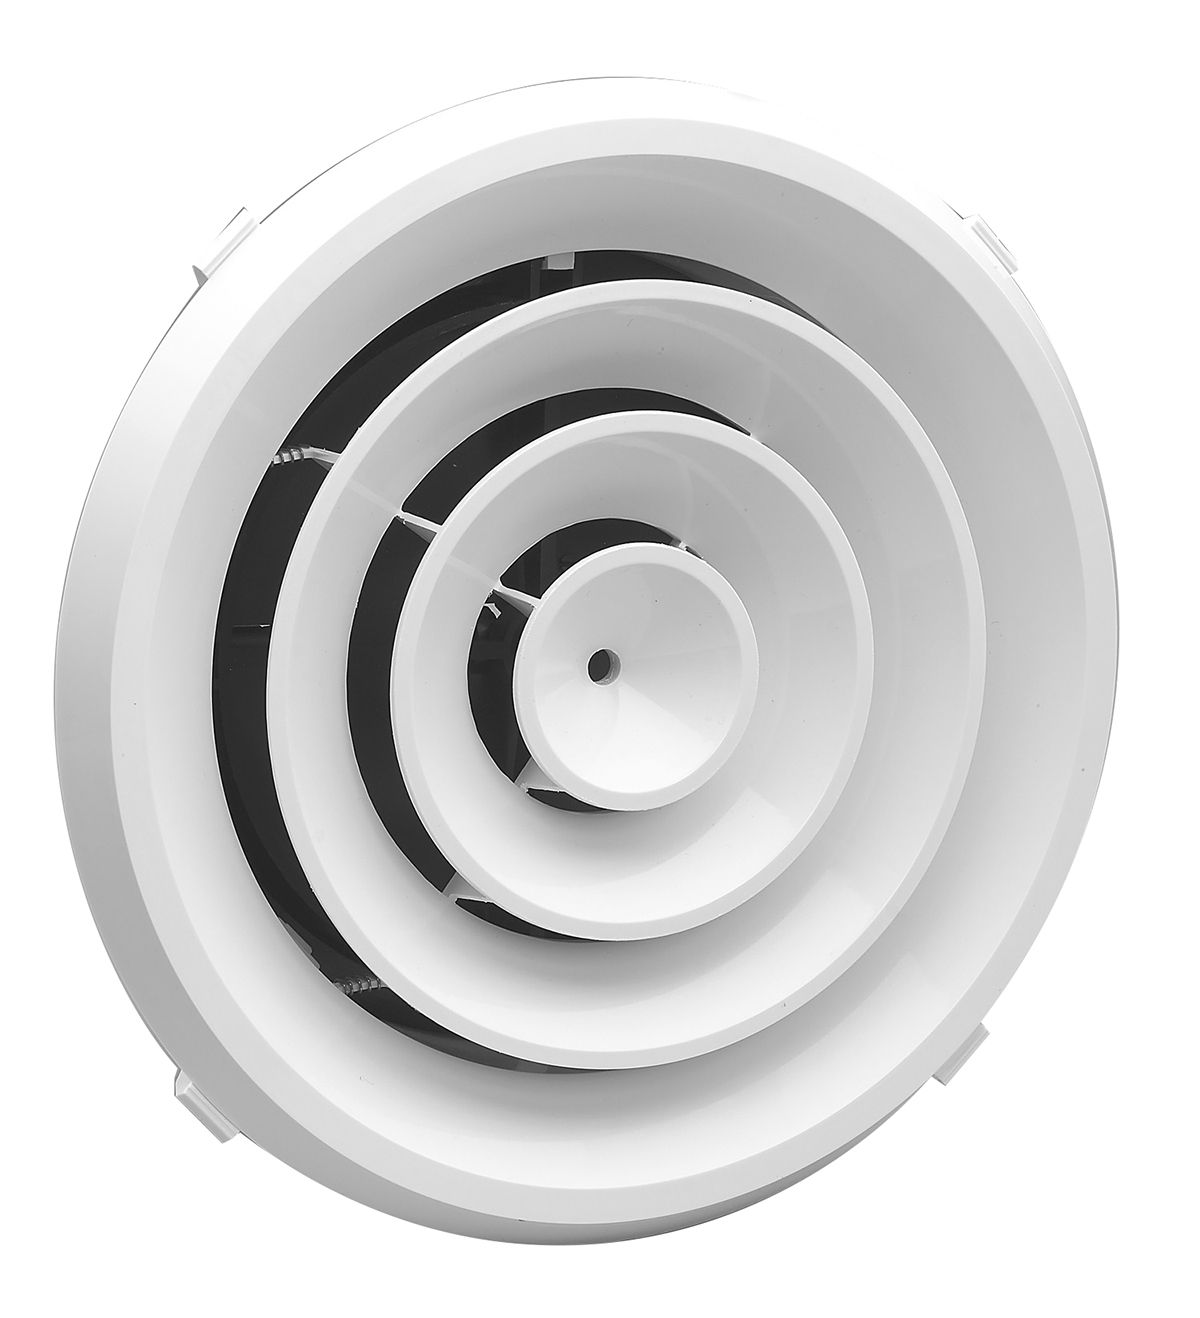 Hart Amp Cooley Rezzin Rz Round Ceiling Diffuser